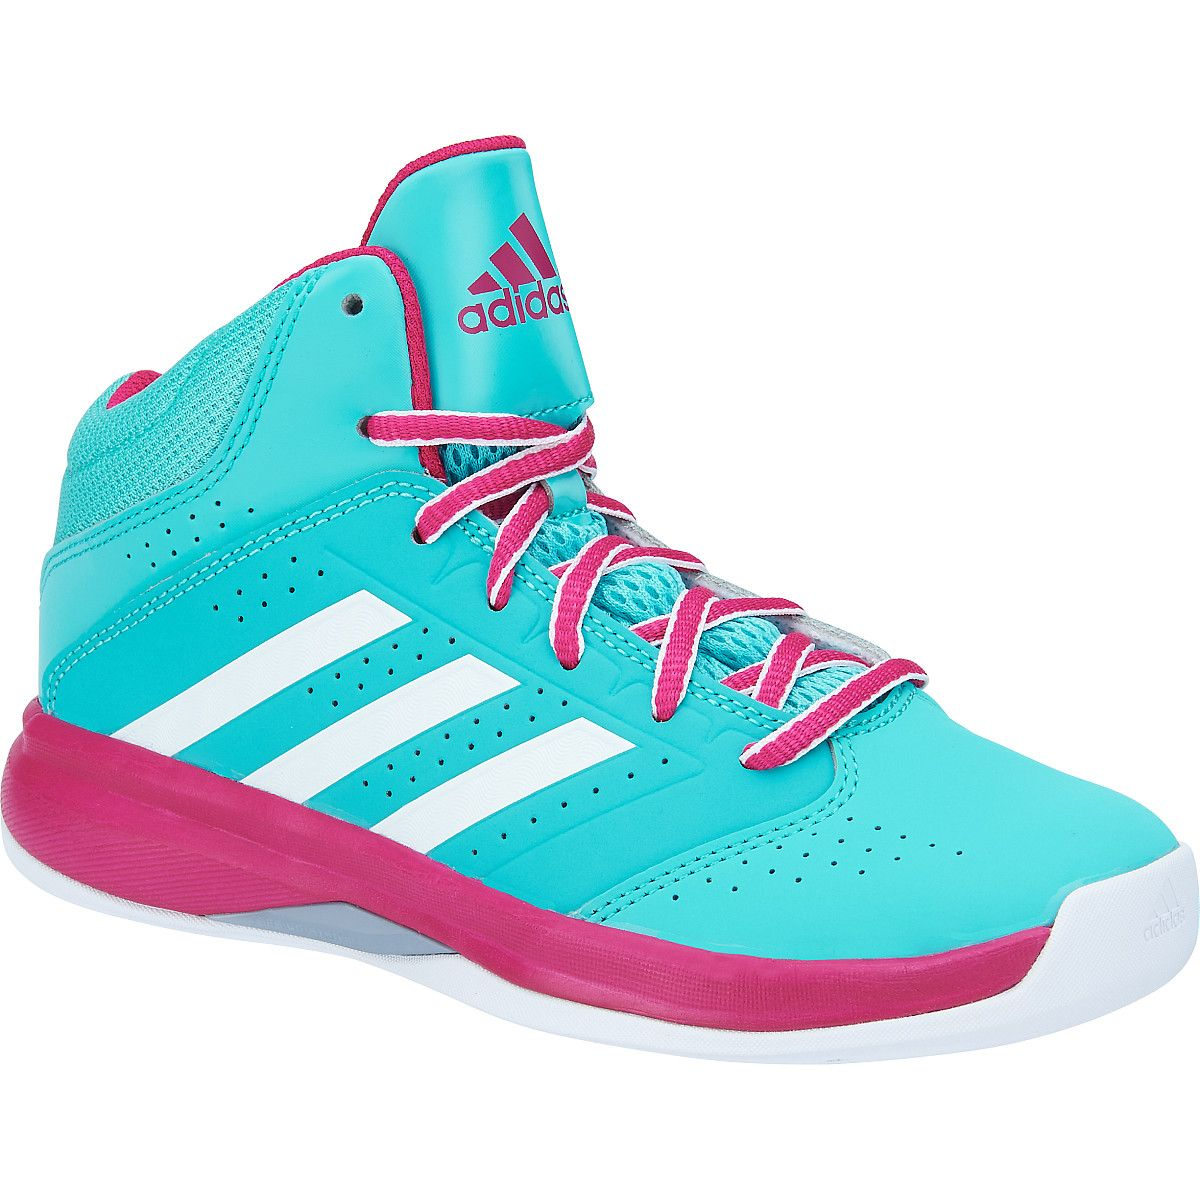 adidas Girls' Isolation 2 K Mid Basketball Shoes - SportsAuthority.com